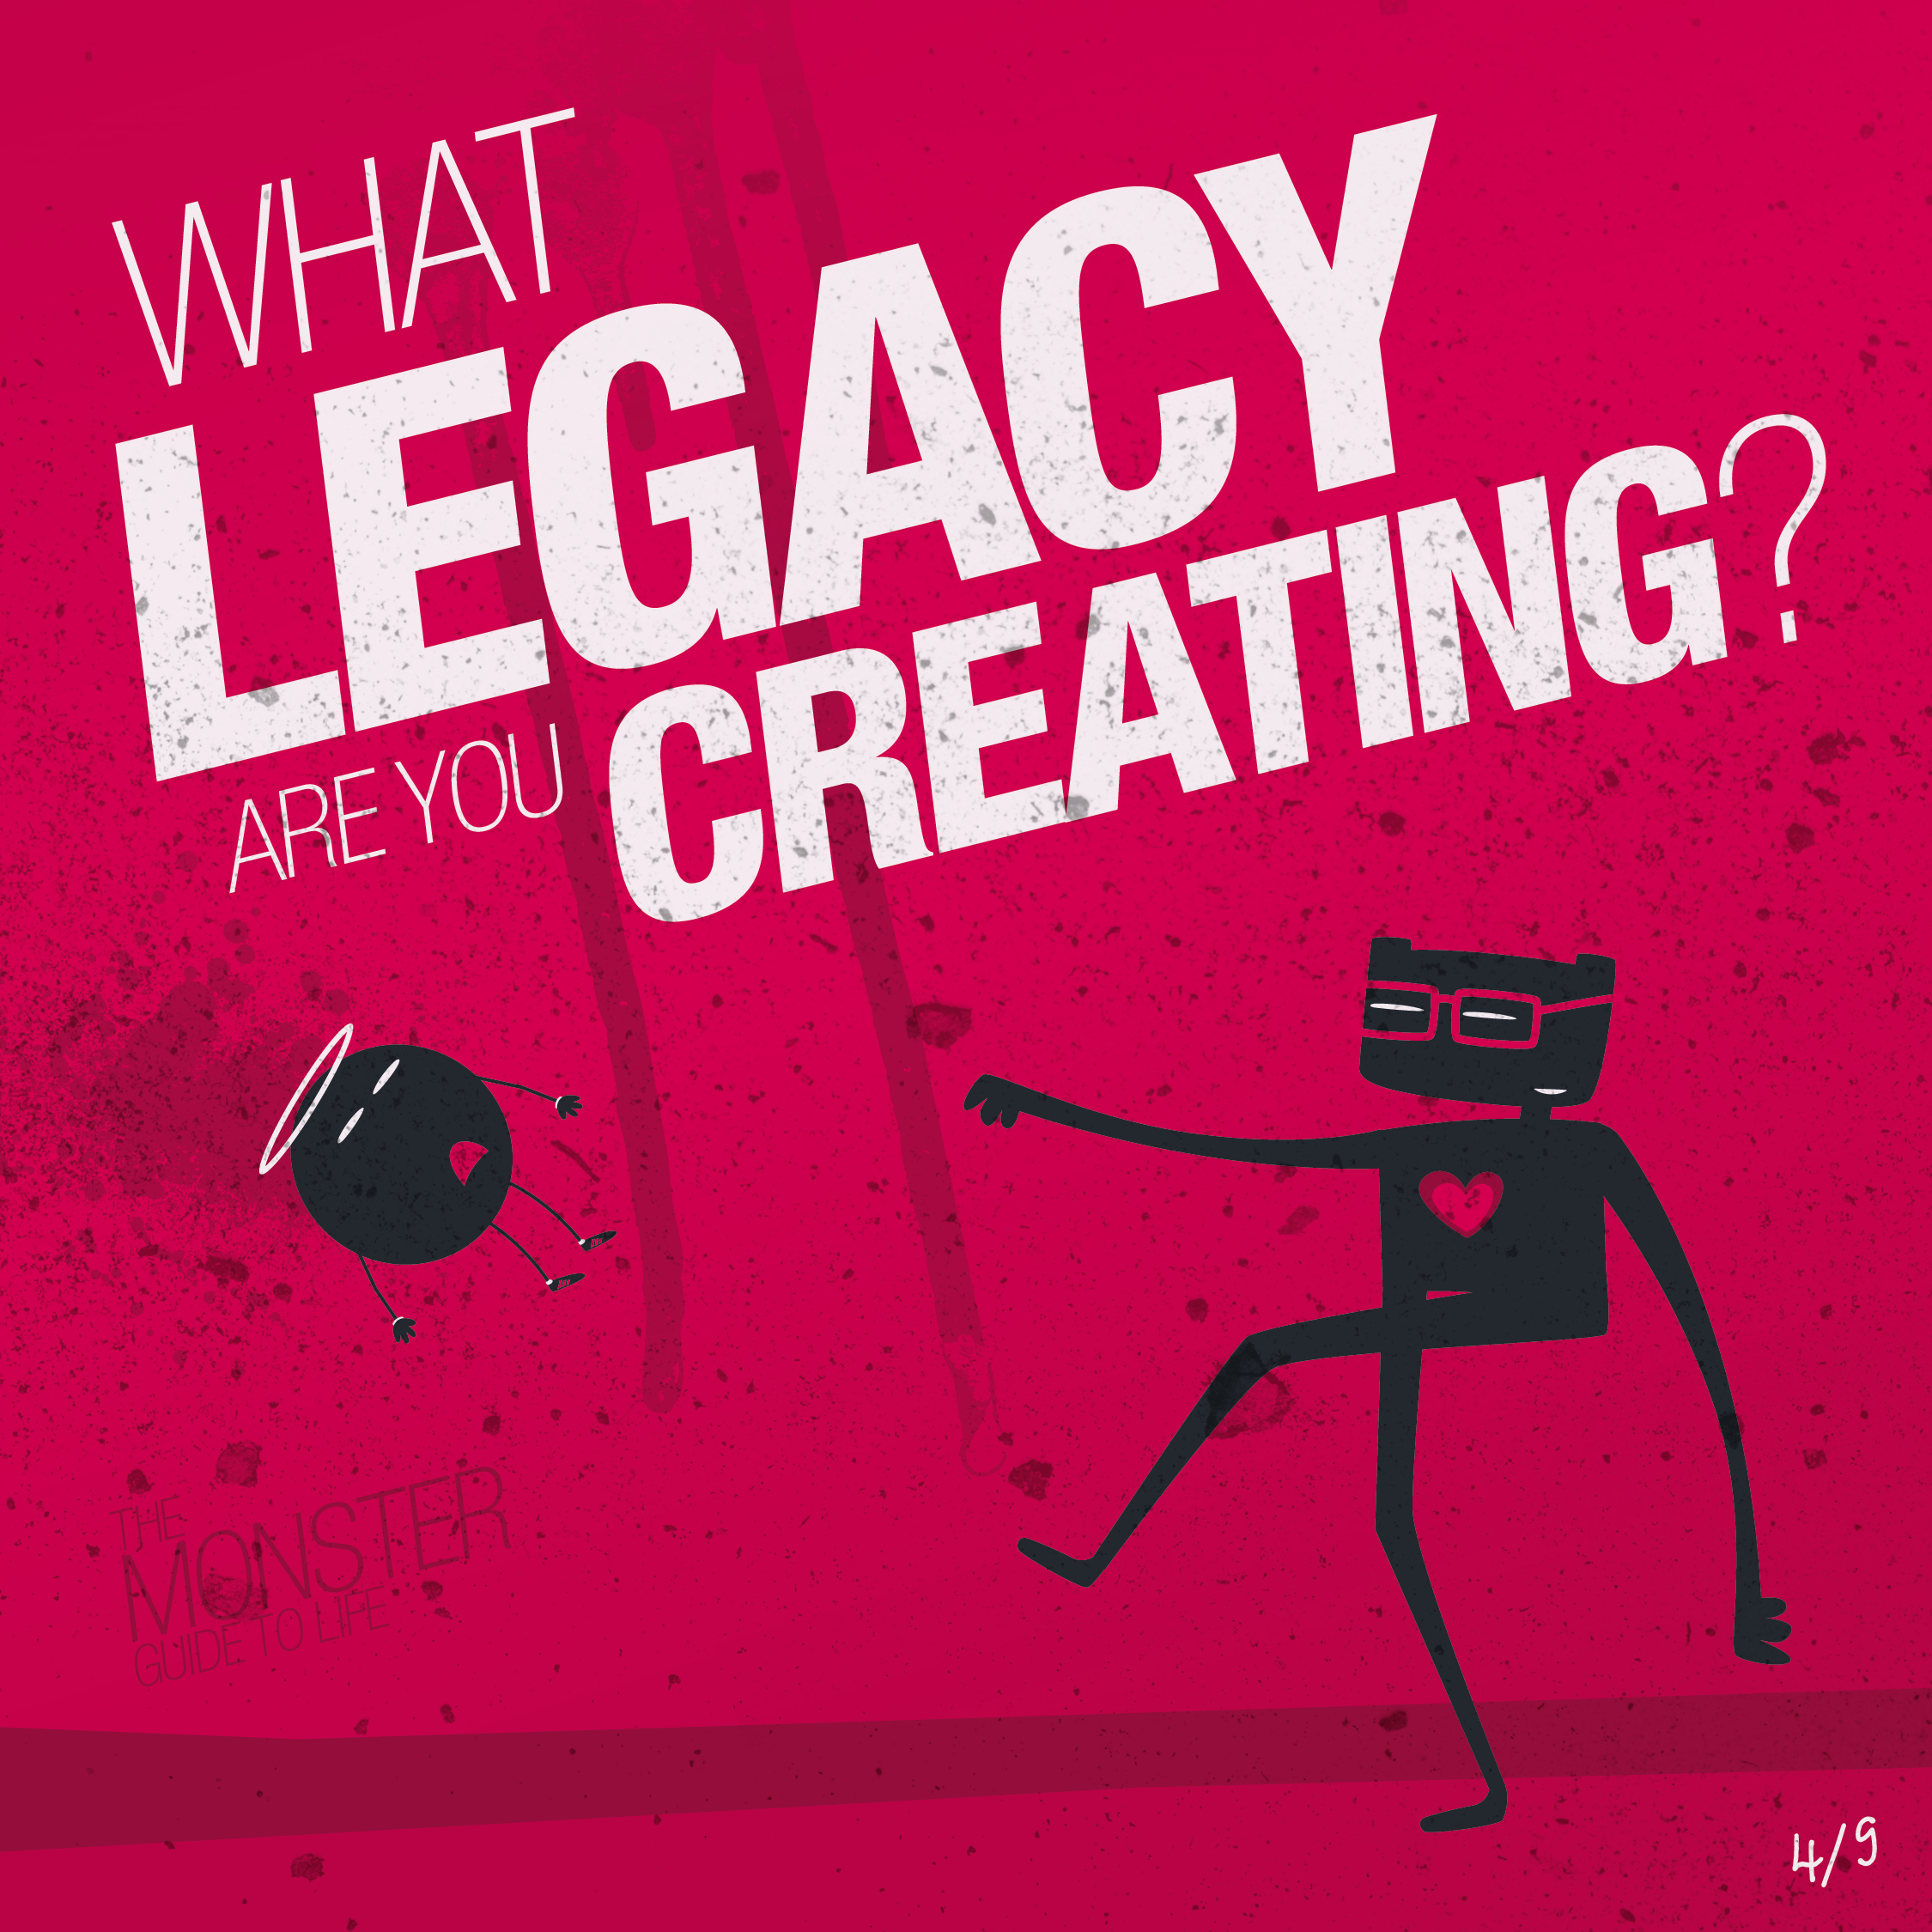 What legacy are you creating?